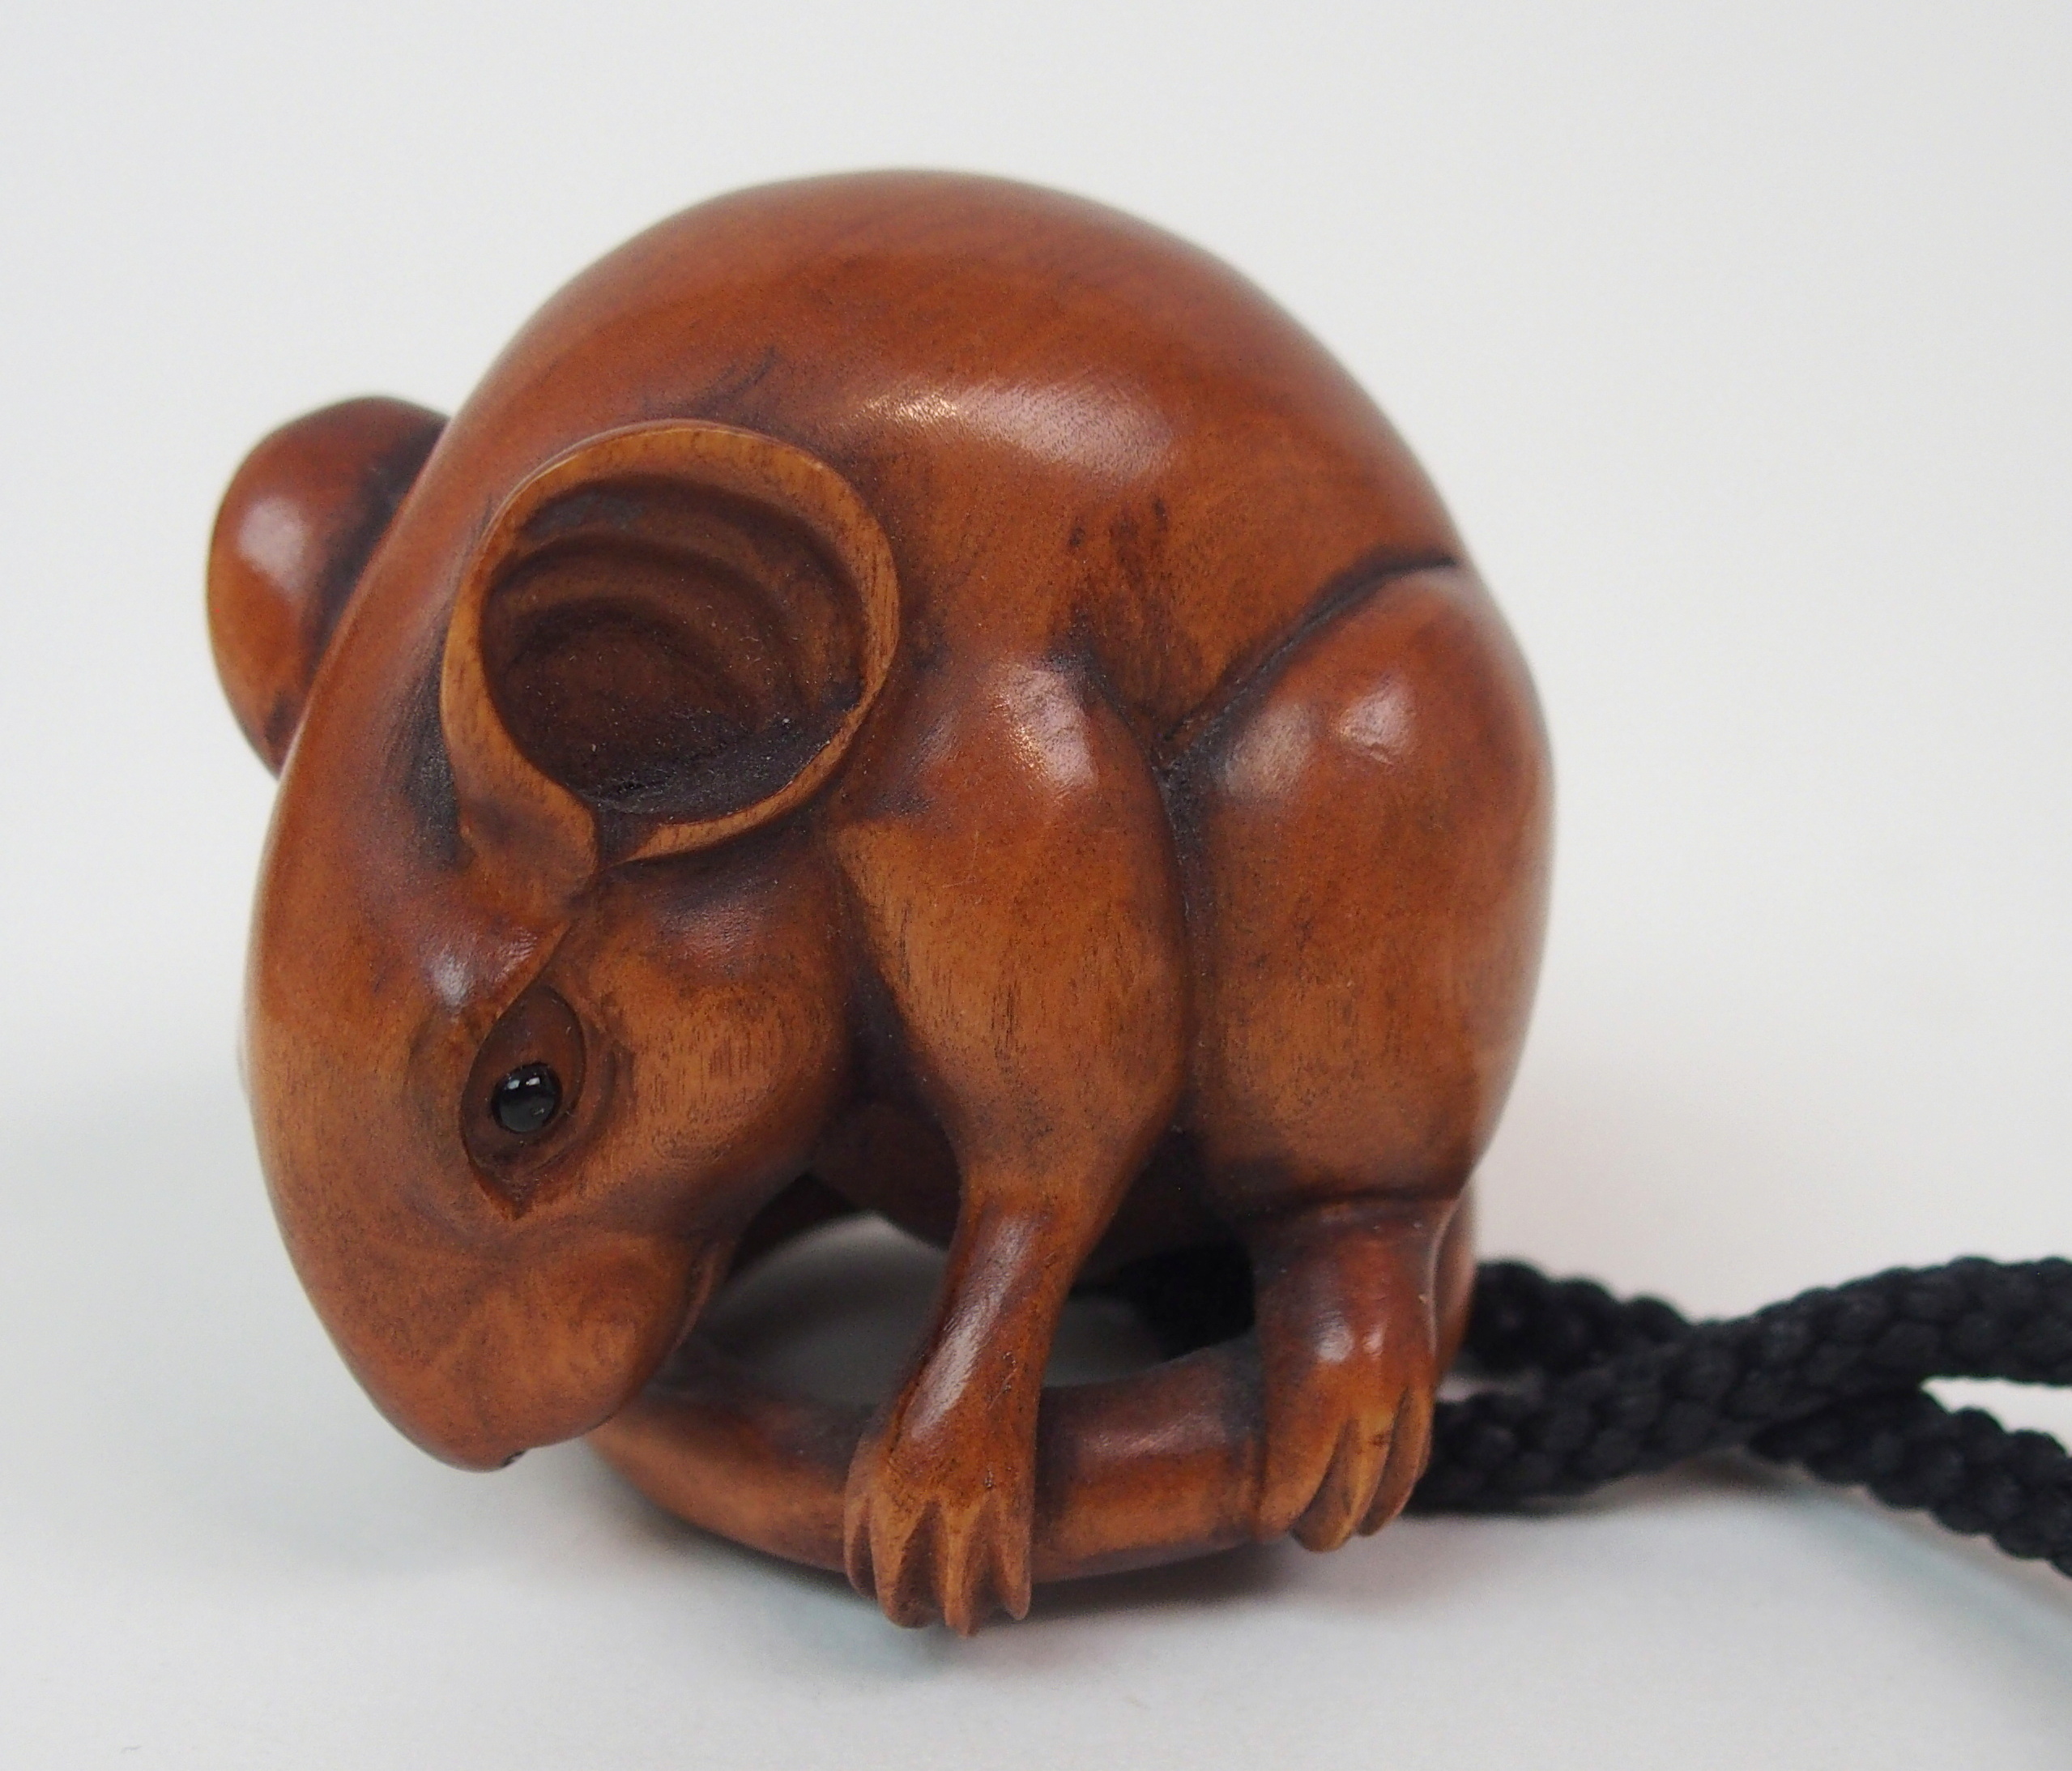 Lot 18 - A JAPANESE CARVED WOOD NETSUKE OF A RAT seated holding its tail, signed, 3.5cm high, with Komai